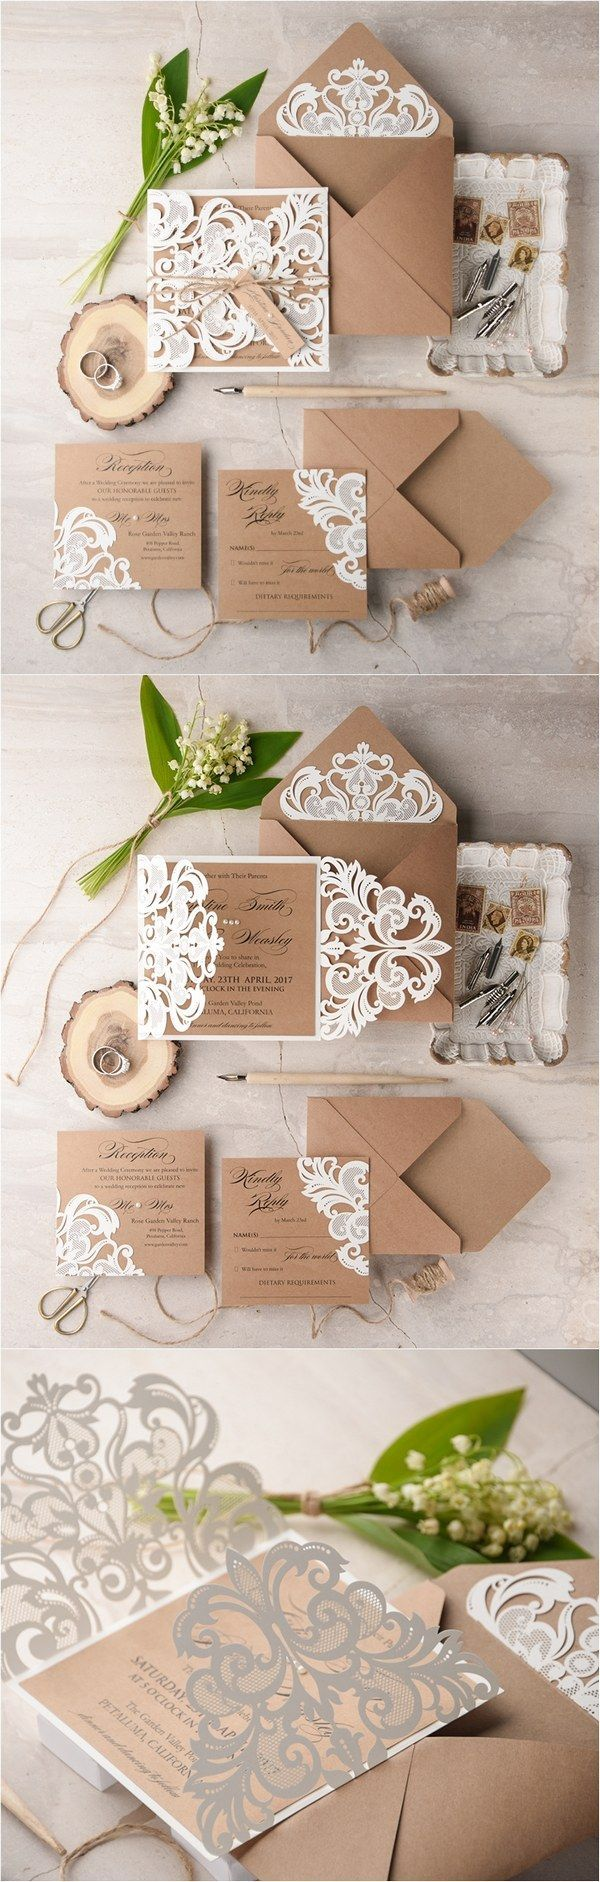 wedding card manufacturers in tamilnadu%0A Ivory kraft paper laser cut rustic wedding invitations   LuctCz    http   www